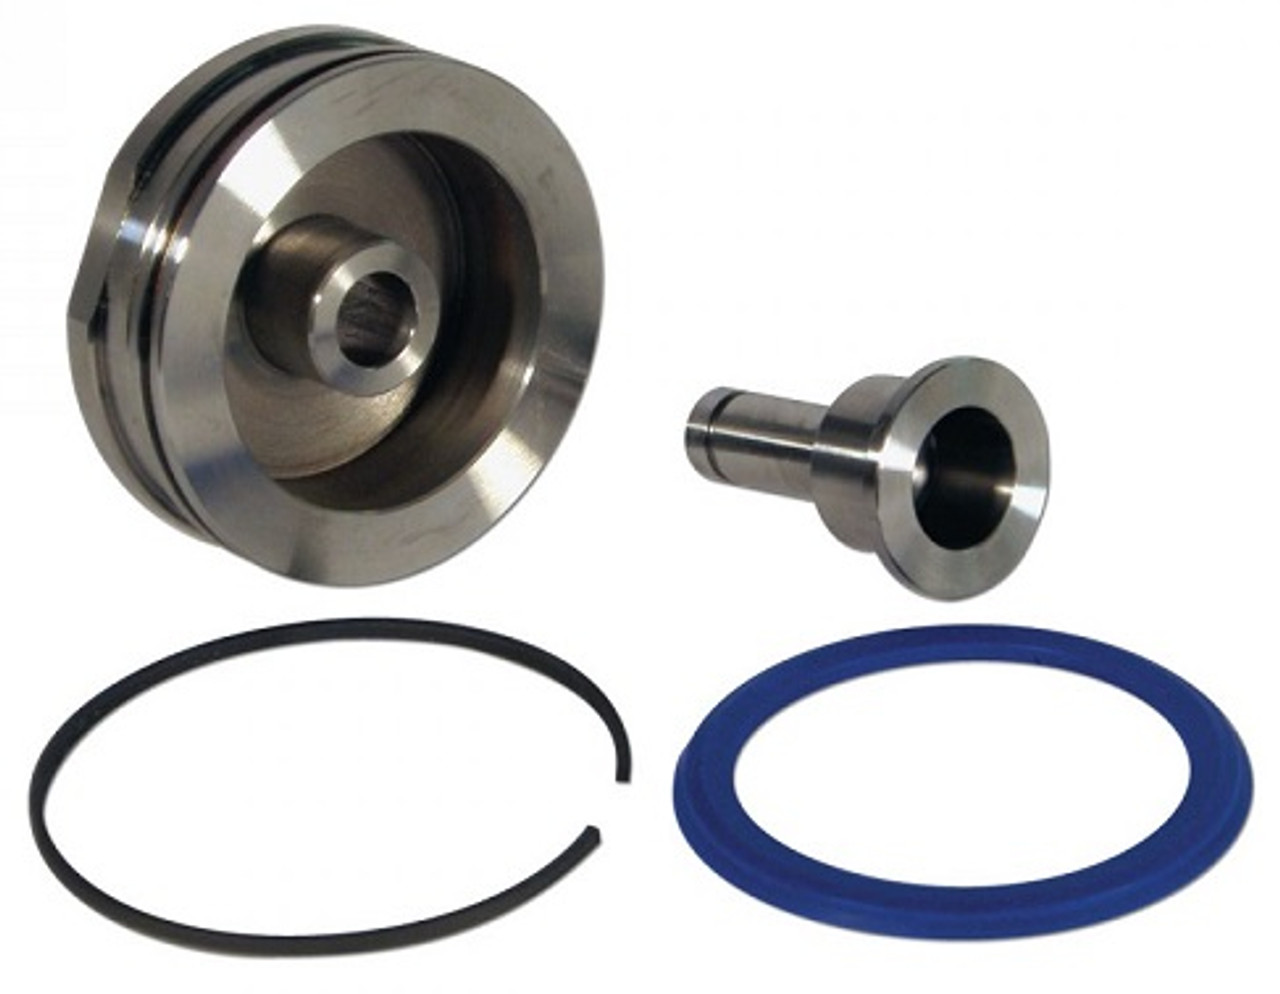 46RH 46RE 47RH 47RE 48RE A727 Super Hold Servo Kit and Accumulator Piston by Sonnax